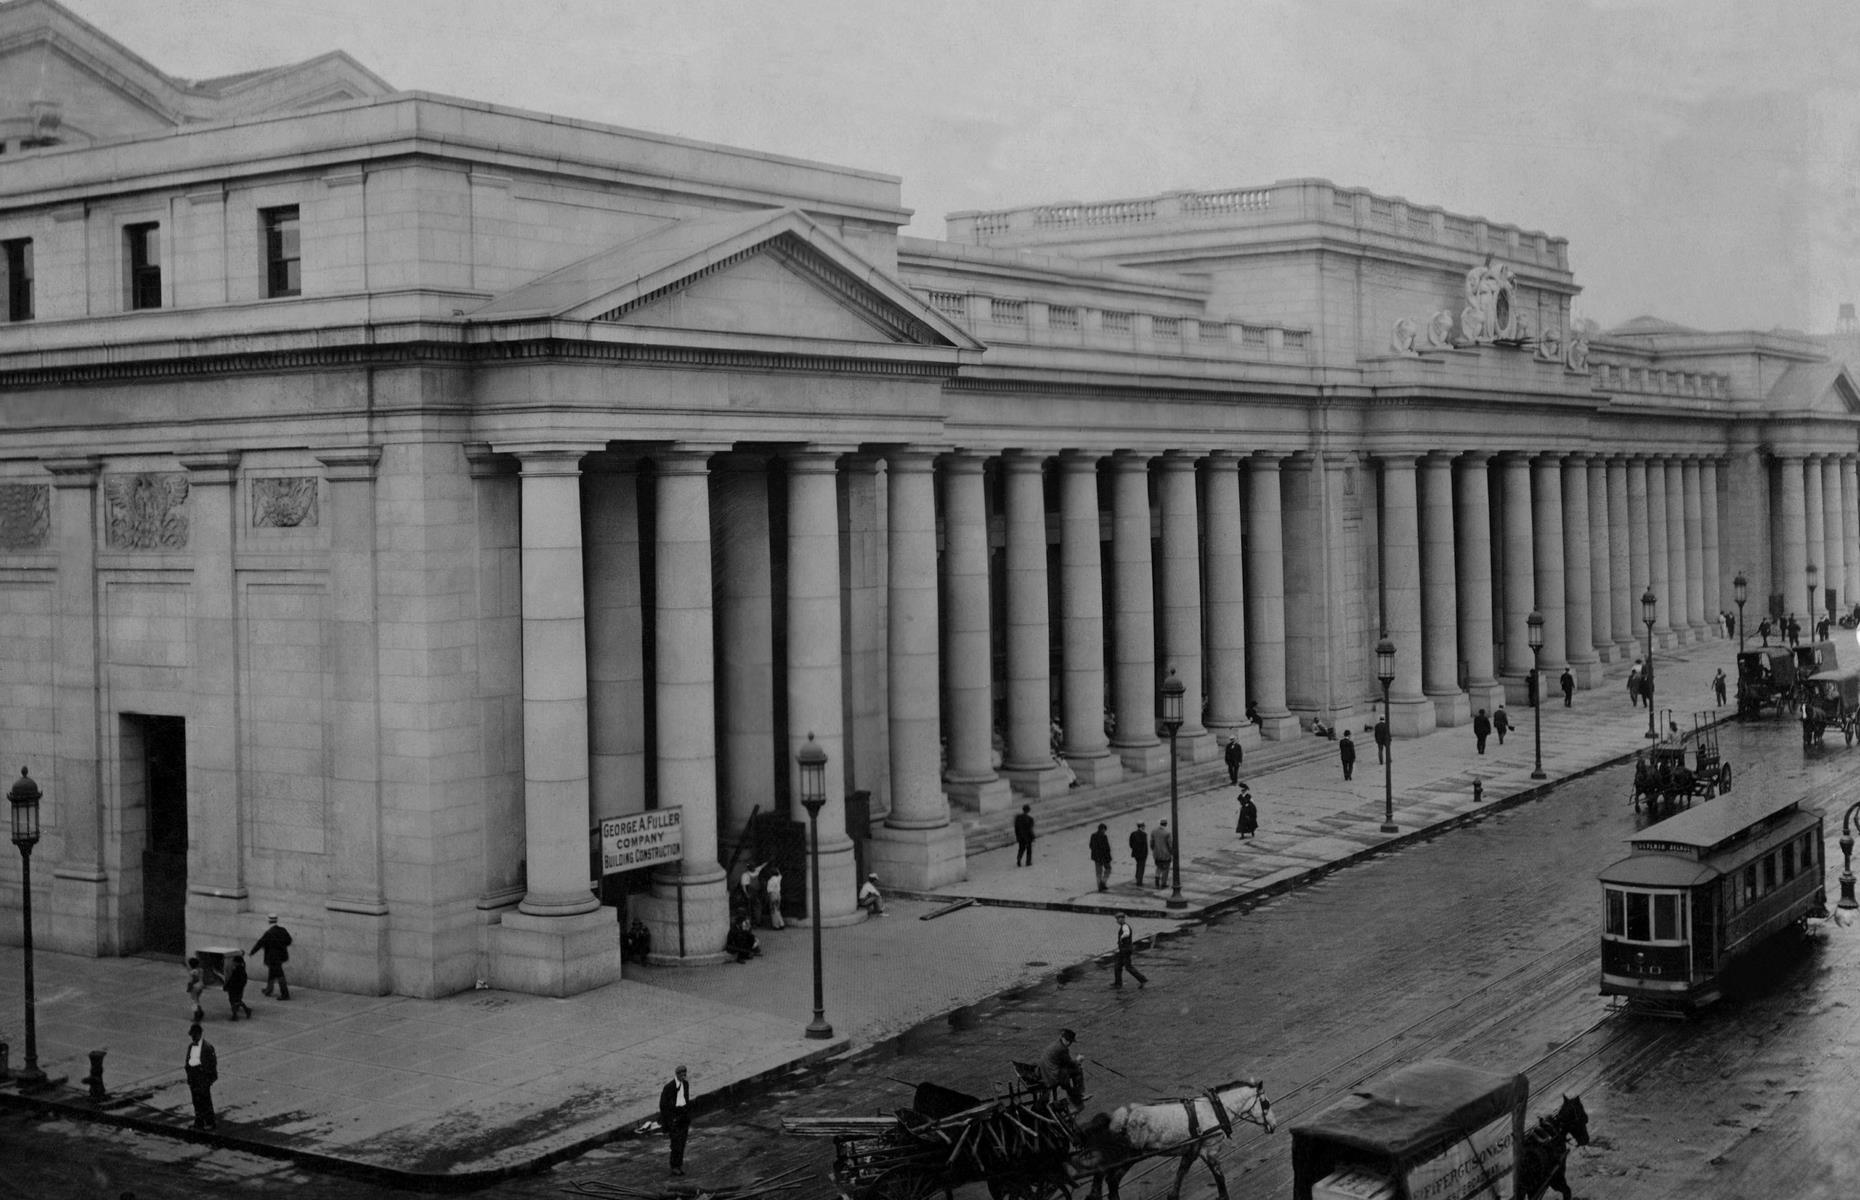 Slide 32 of 39: The former Penn Station, opened in 1910, was a striking sight: designed in the Beaux Arts style, it featured pink granite, vaulted glass windows, giant stone pillars and archways. Unfortunately, like many grand buildings, it cost a hefty sum to maintain, so in 1962 it was demolished – despite the backlash from many New Yorkers.